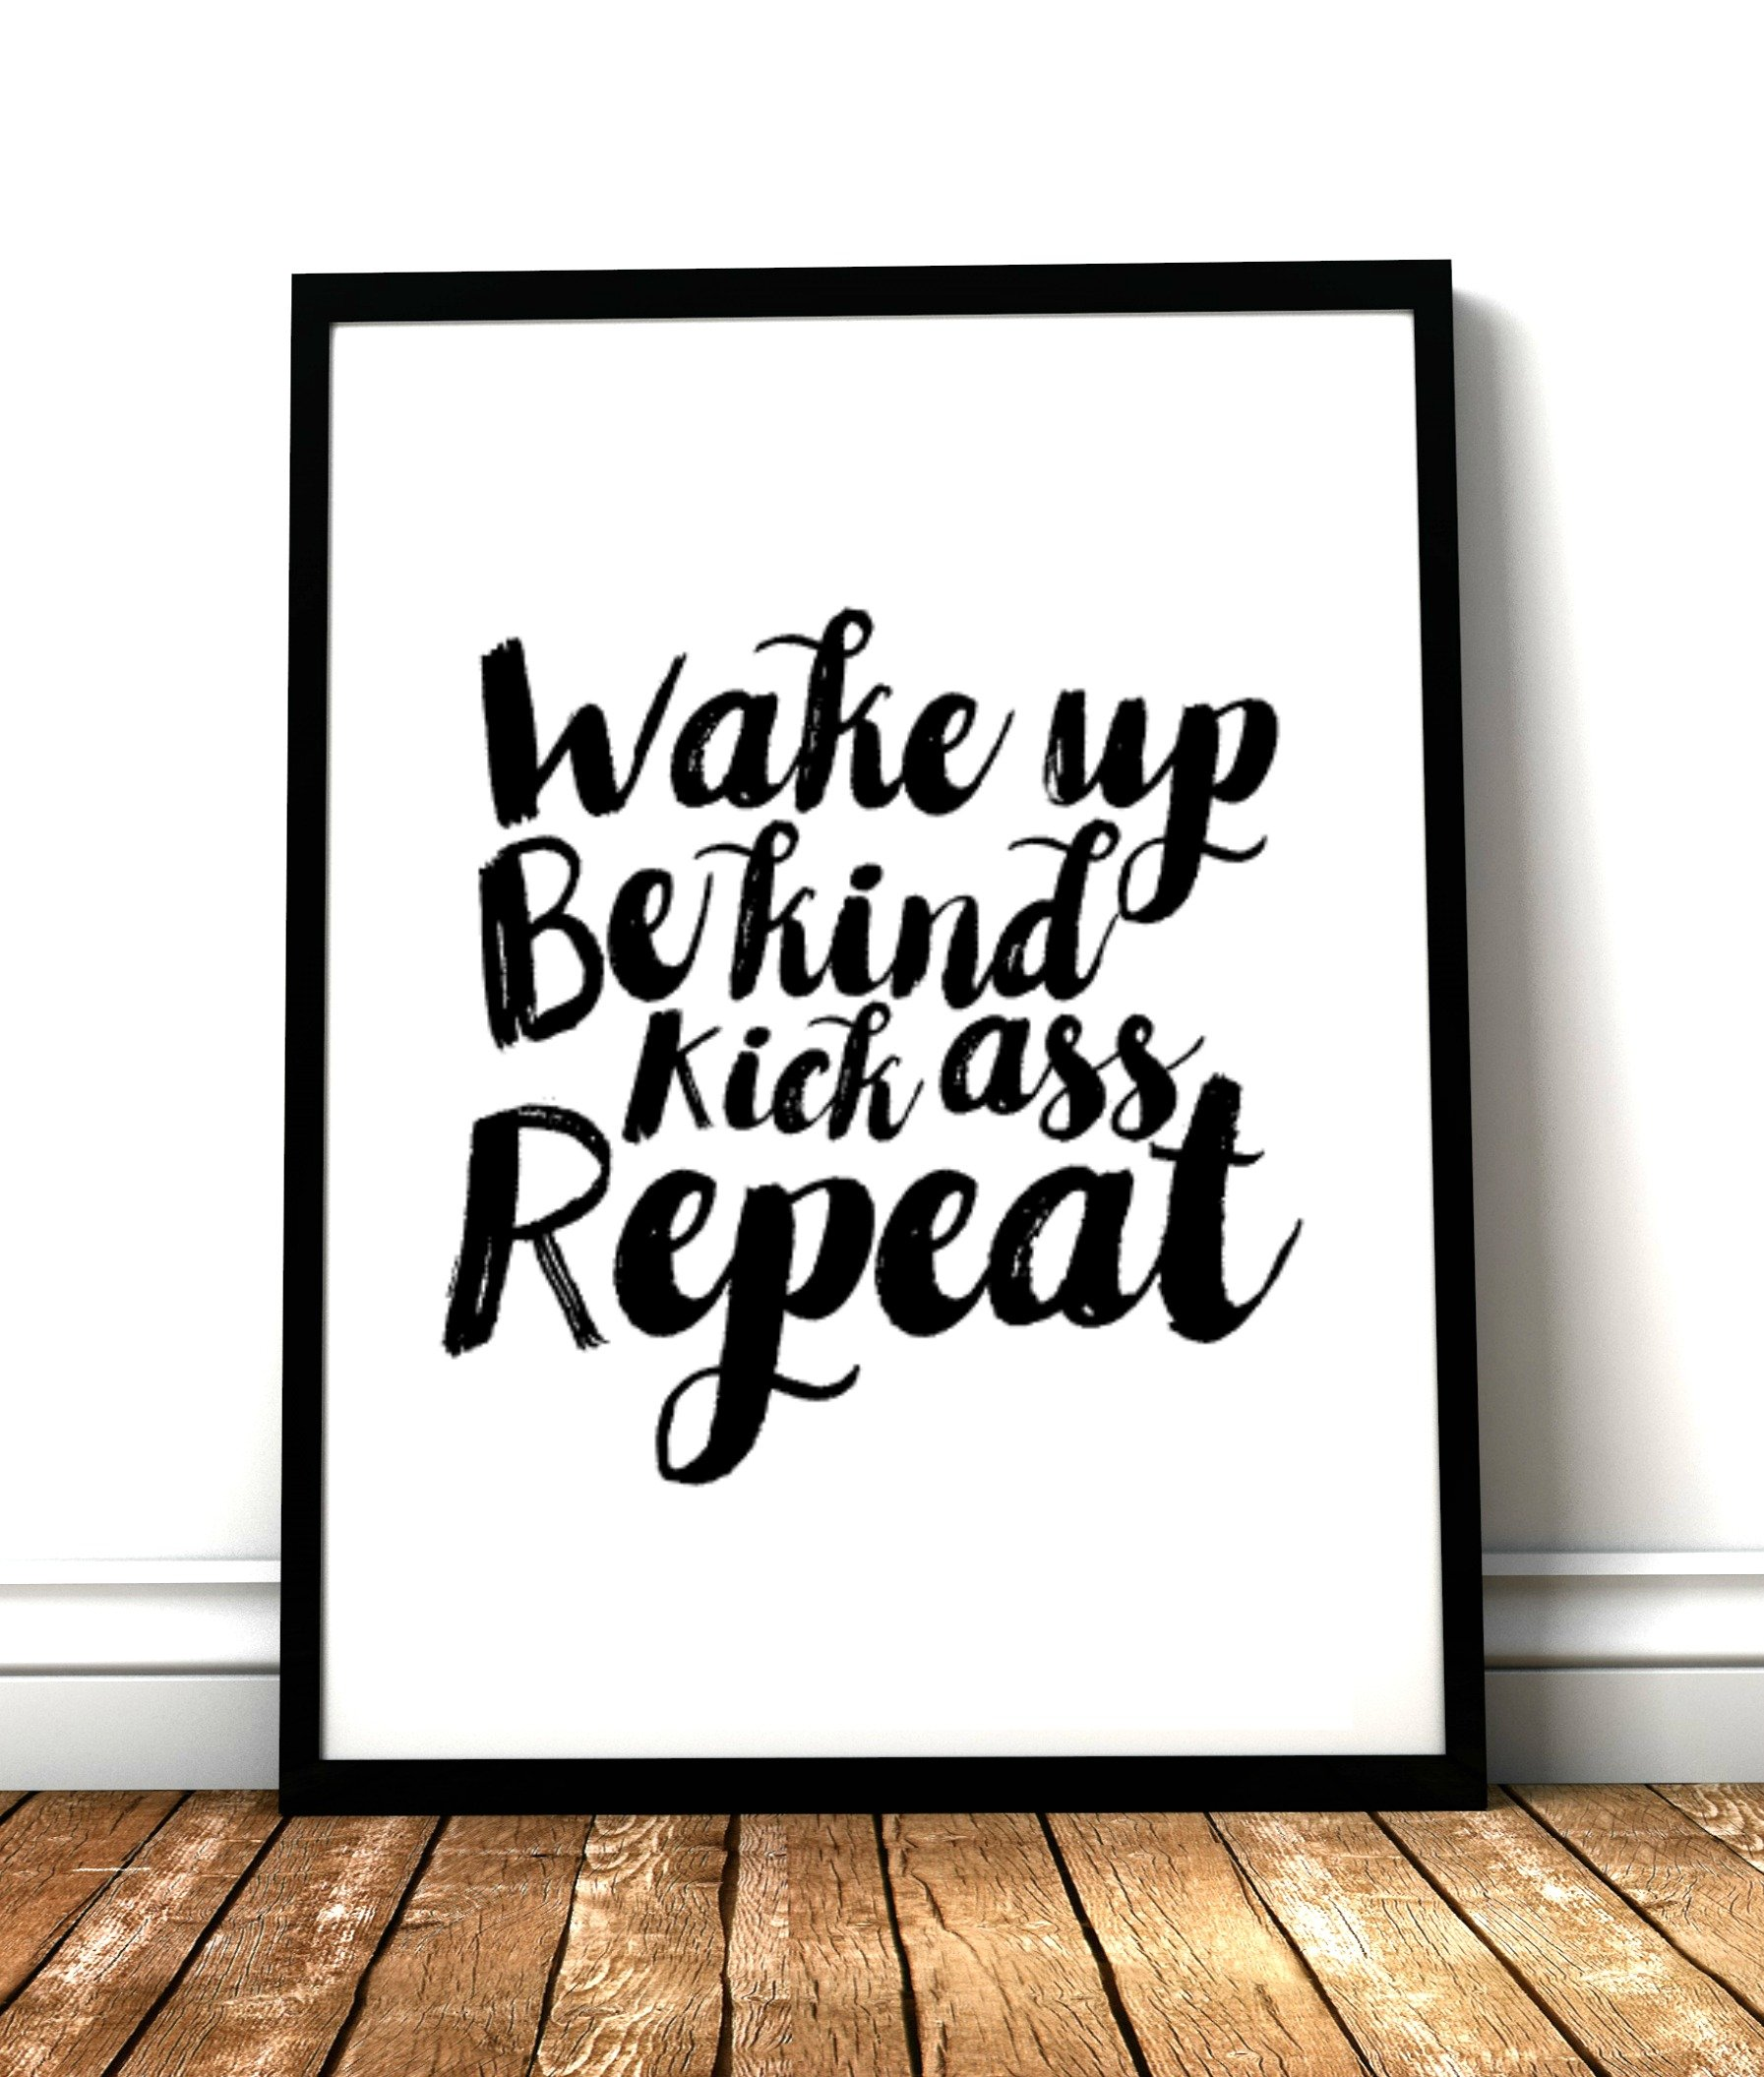 Wake up, be kind, kick ass, repeat